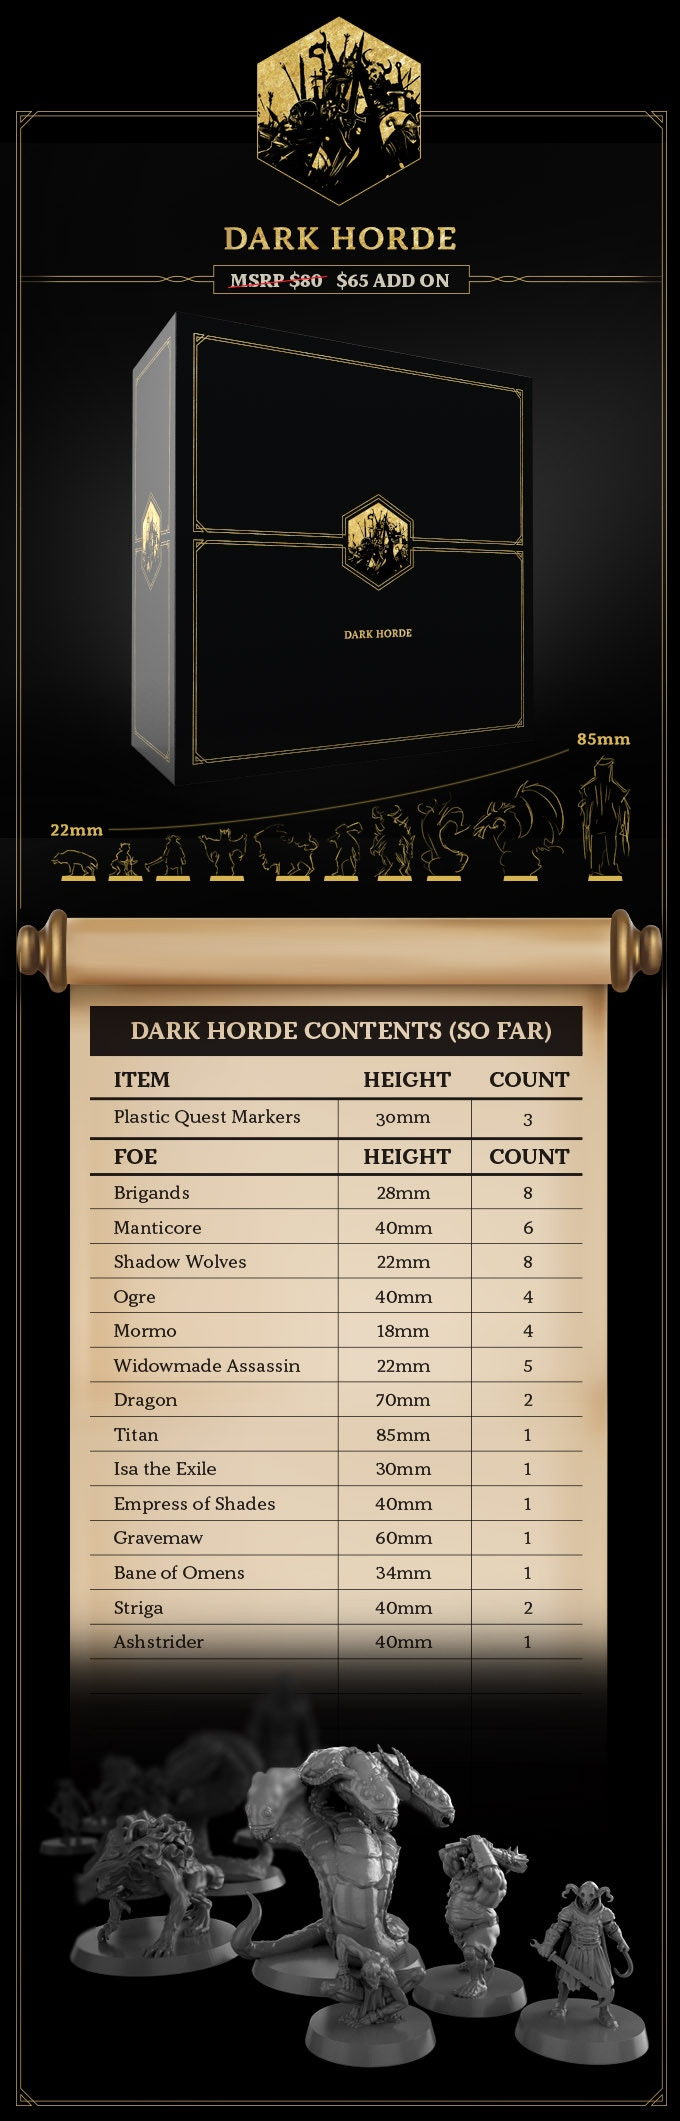 Dark Horde Expansion - Restoration Games